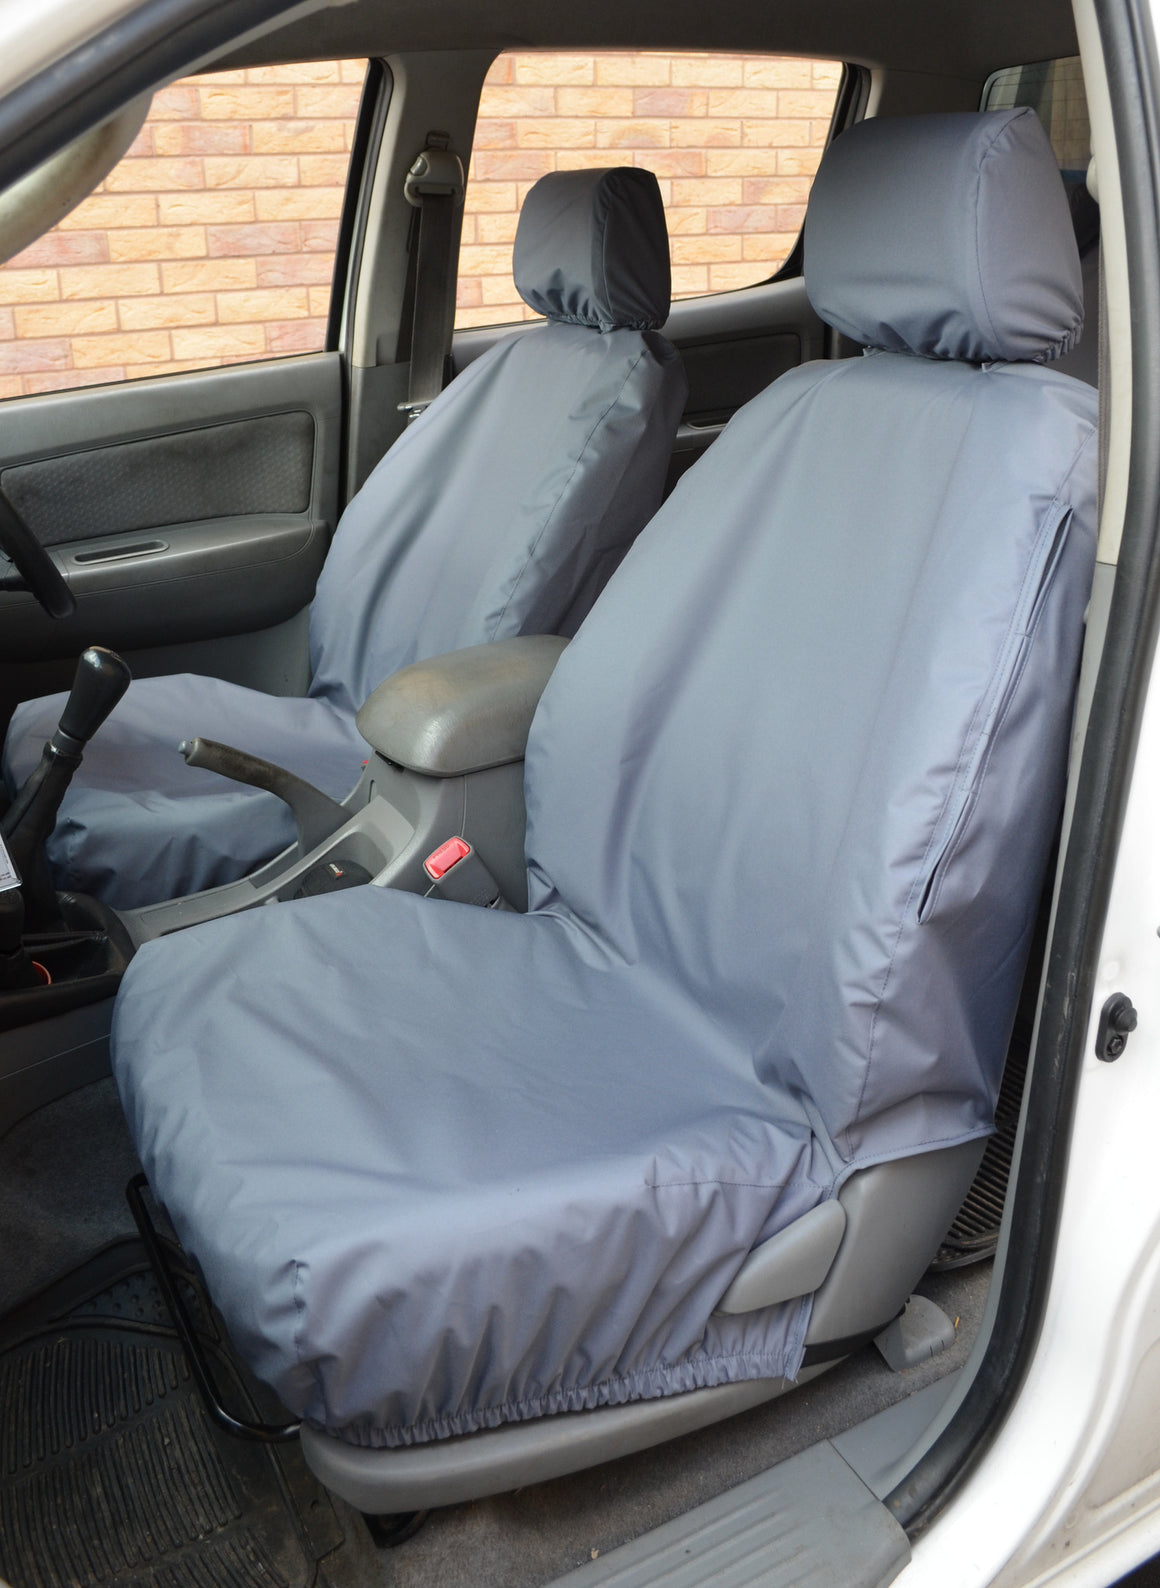 Toyota Hilux 2005 - 2016 Seat Covers Front Pair / Grey Turtle Covers Ltd